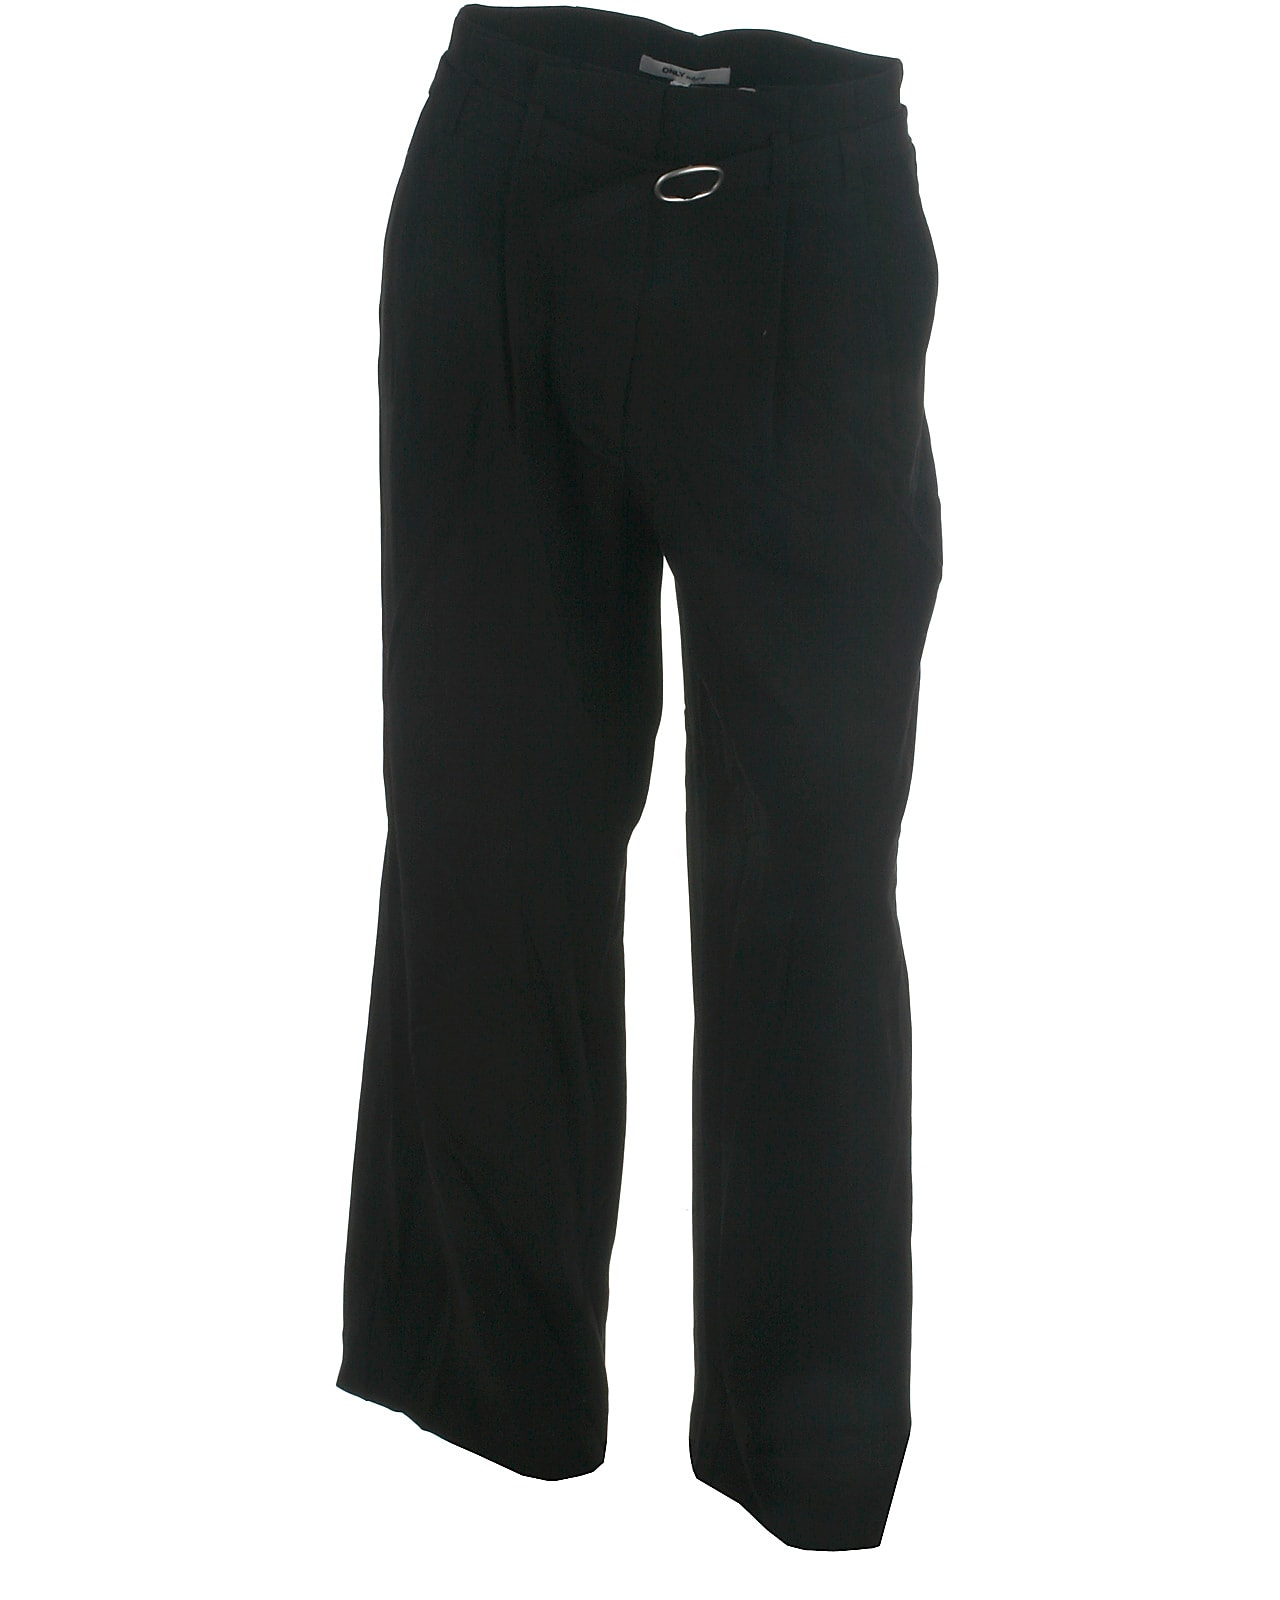 Image of Only ankel wide pant, Payton, black